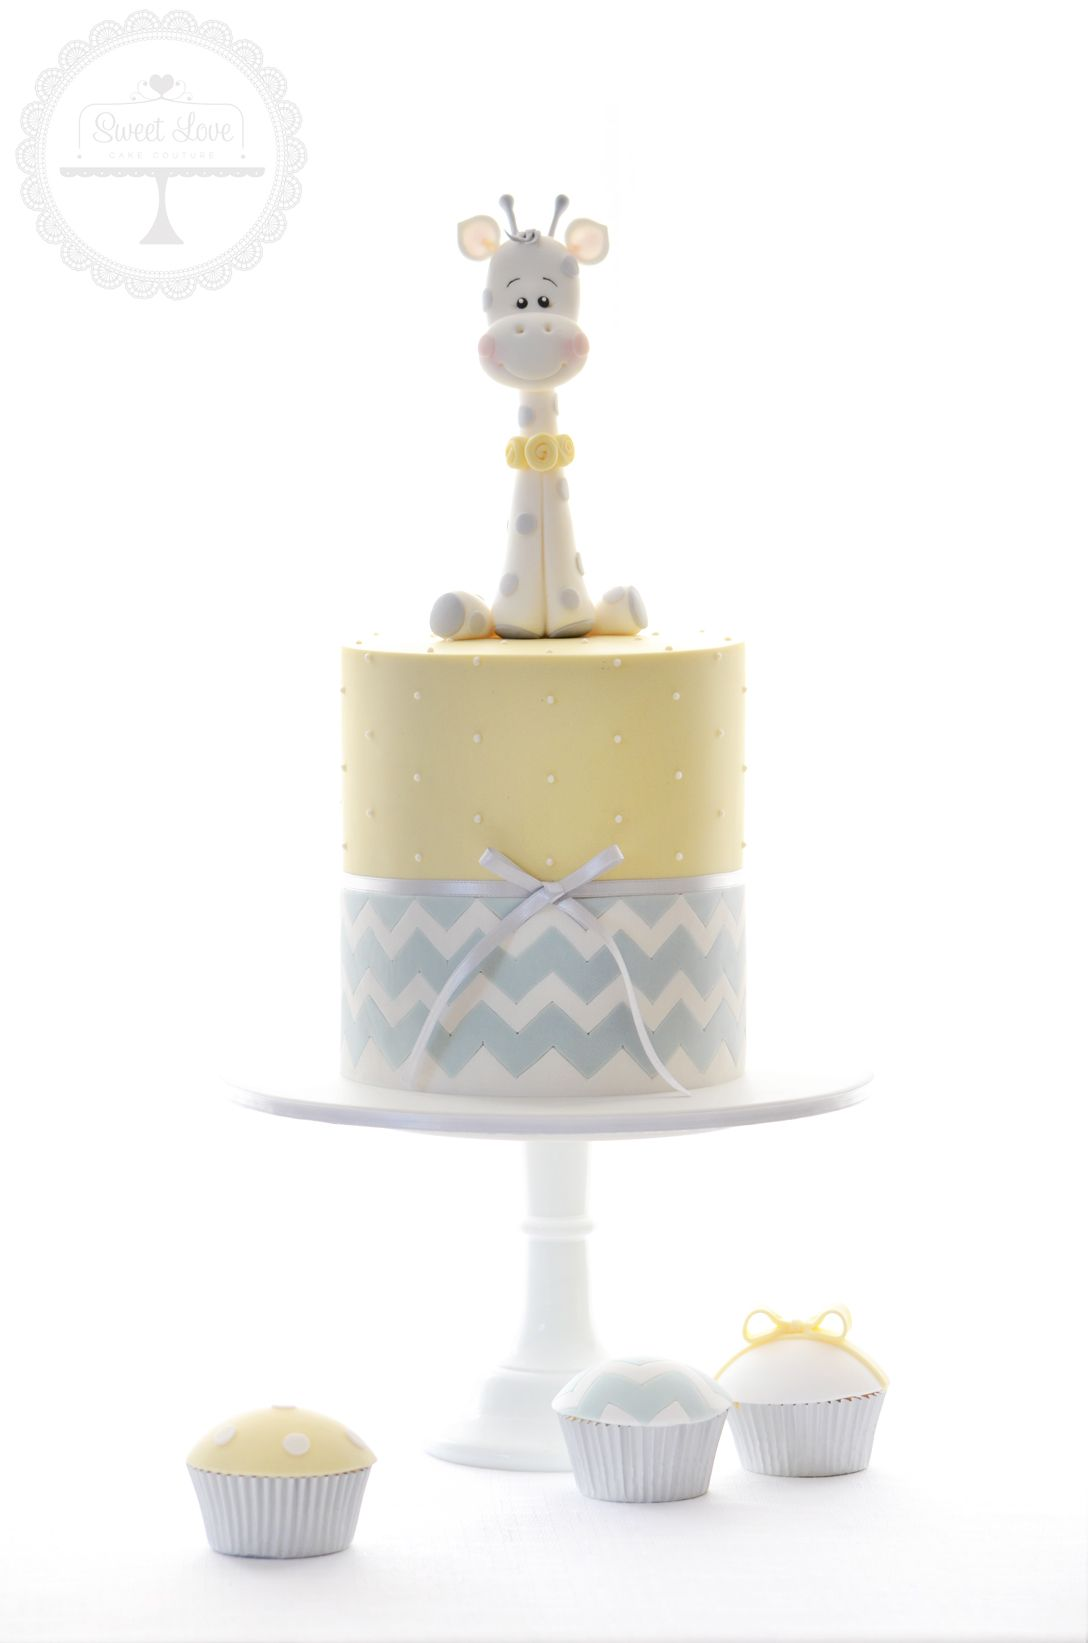 Celebration Cakes | Sweet Love Cake Couture - Coffs Harbour Wedding ...